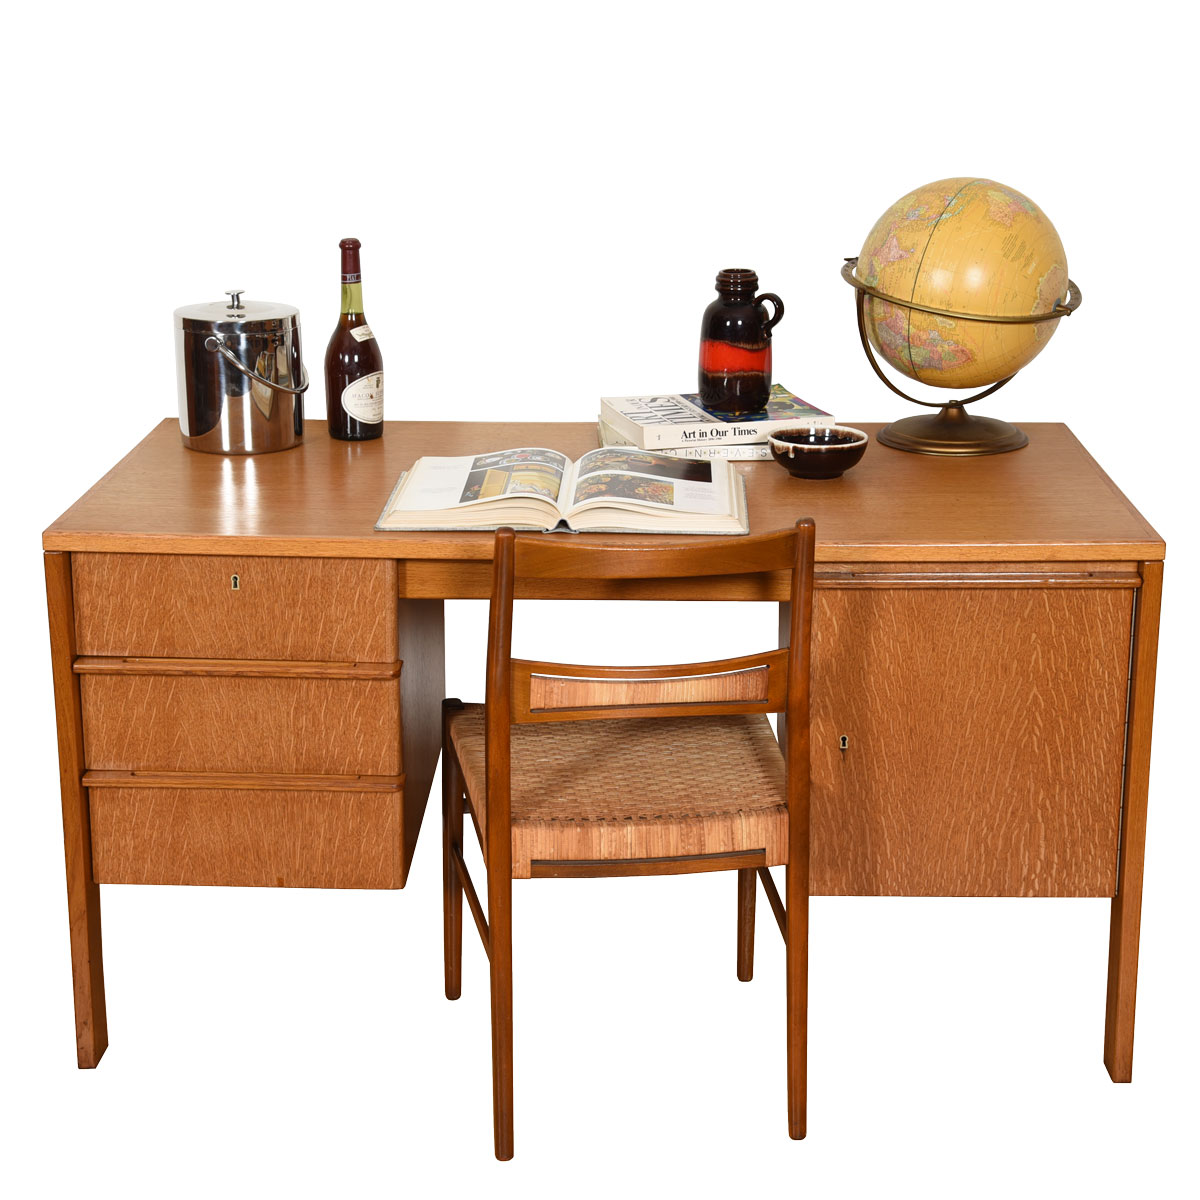 Edmund Spence Locking Scandinavian Modern Compact Desk